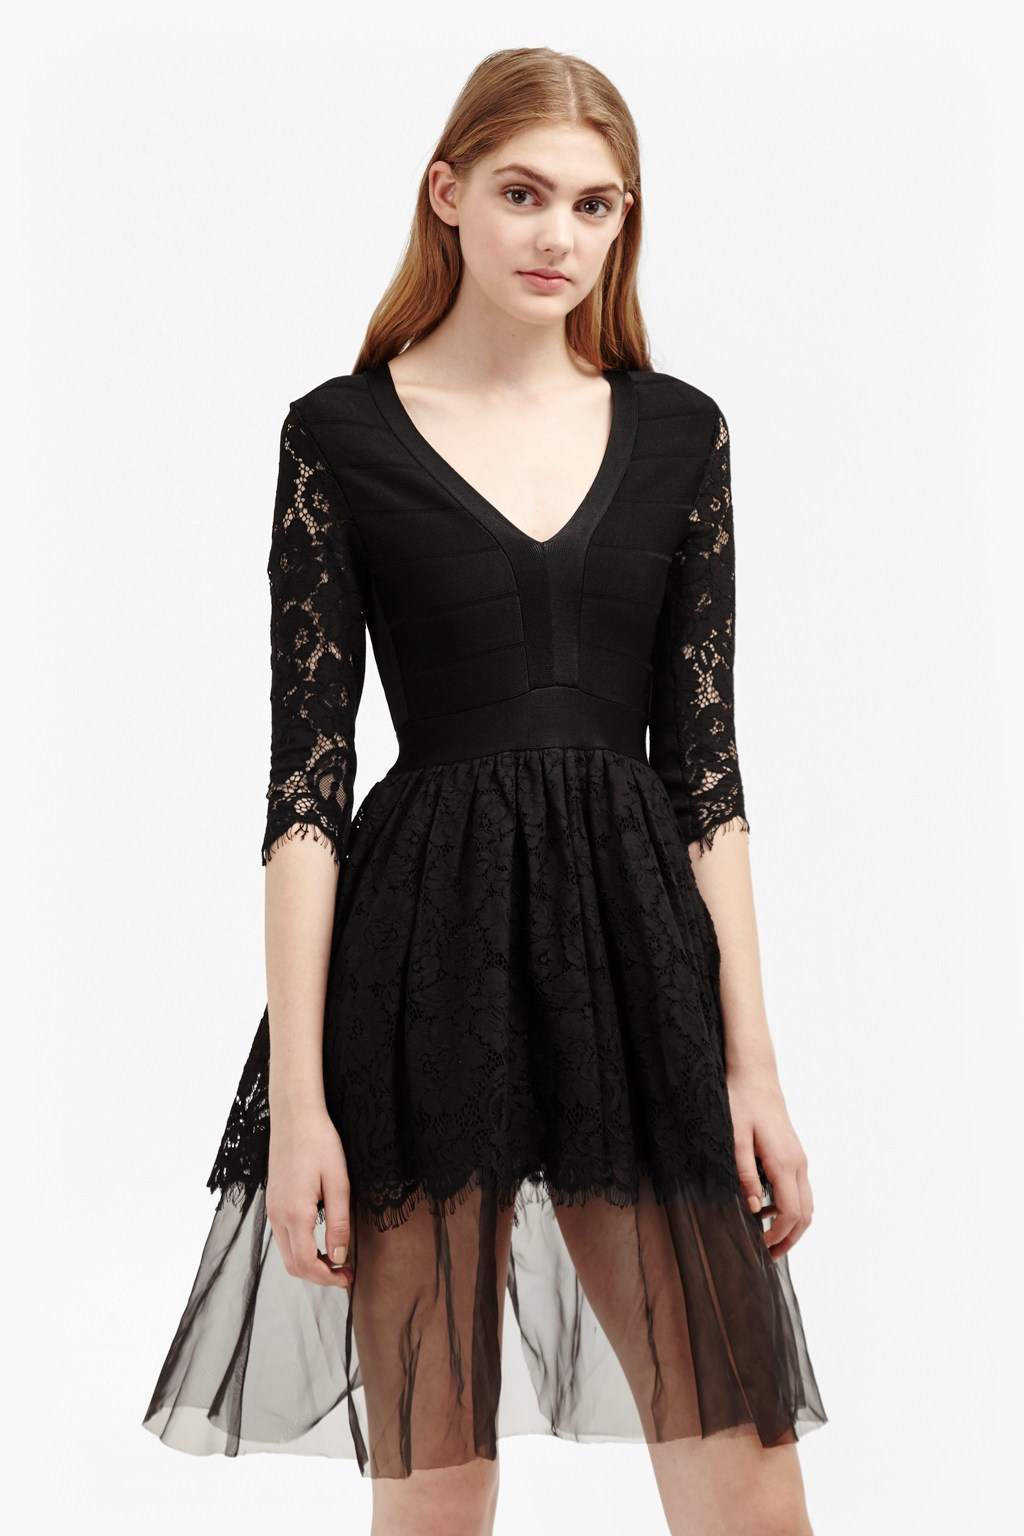 Spotlight Lace Tulle Mix Dress Black - neckline: v-neck; pattern: plain; style: full skirt; predominant colour: black; occasions: evening; length: just above the knee; fit: fitted at waist & bust; fibres: viscose/rayon - stretch; sleeve length: 3/4 length; sleeve style: standard; texture group: lace; pattern type: fabric; season: a/w 2016; wardrobe: event